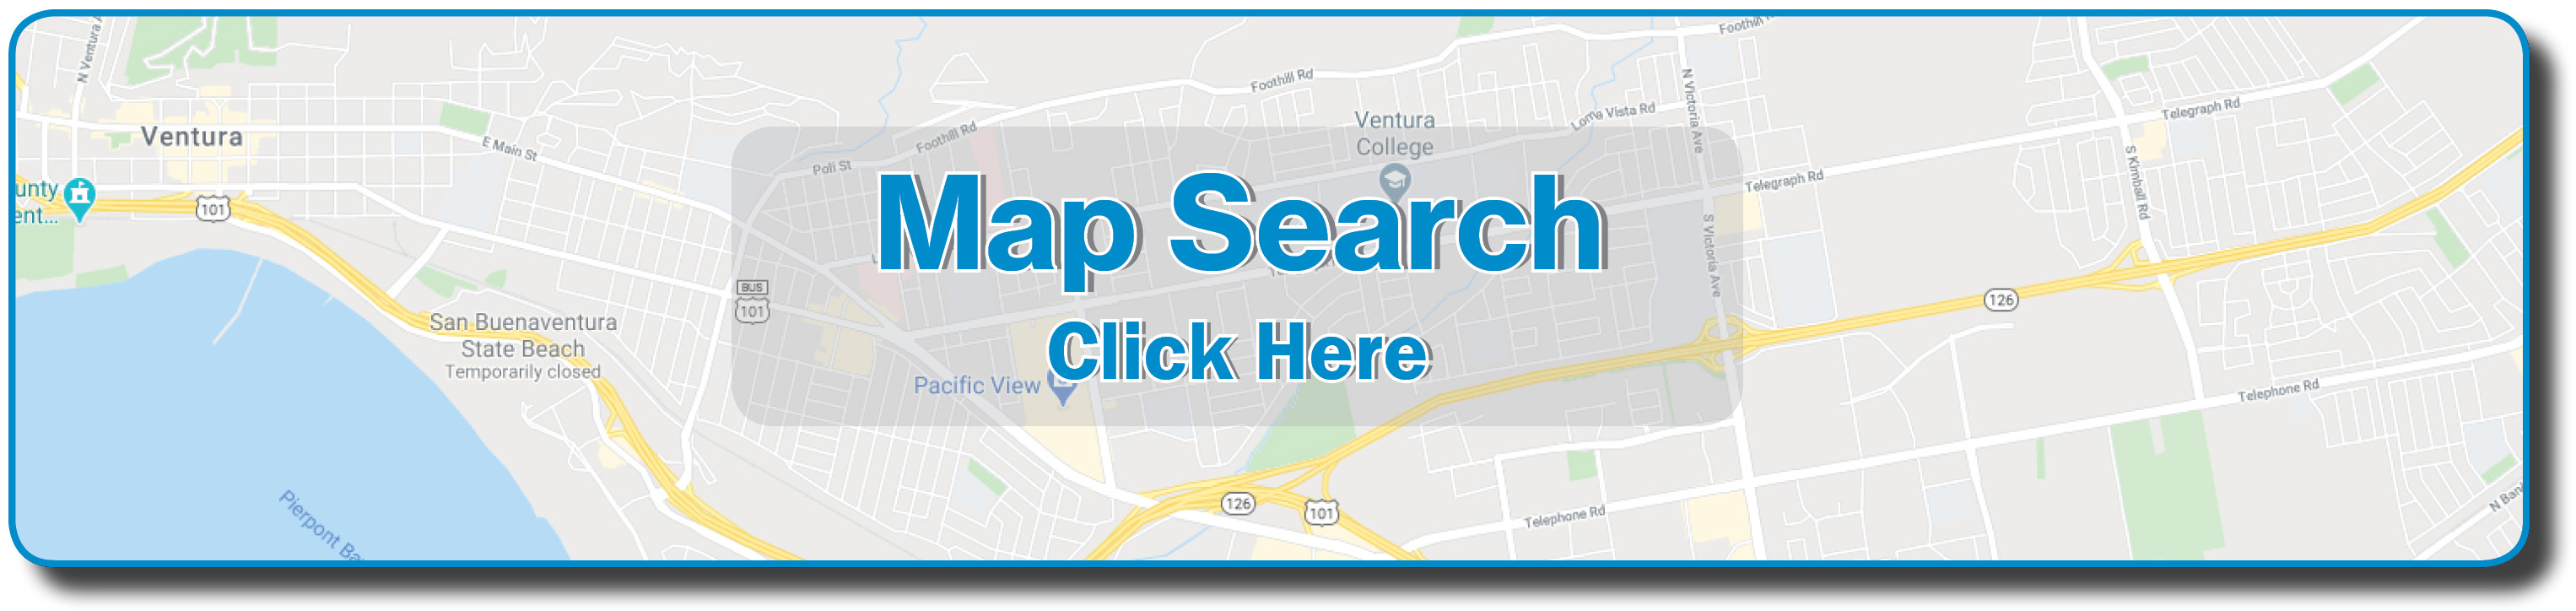 Map for Map Search